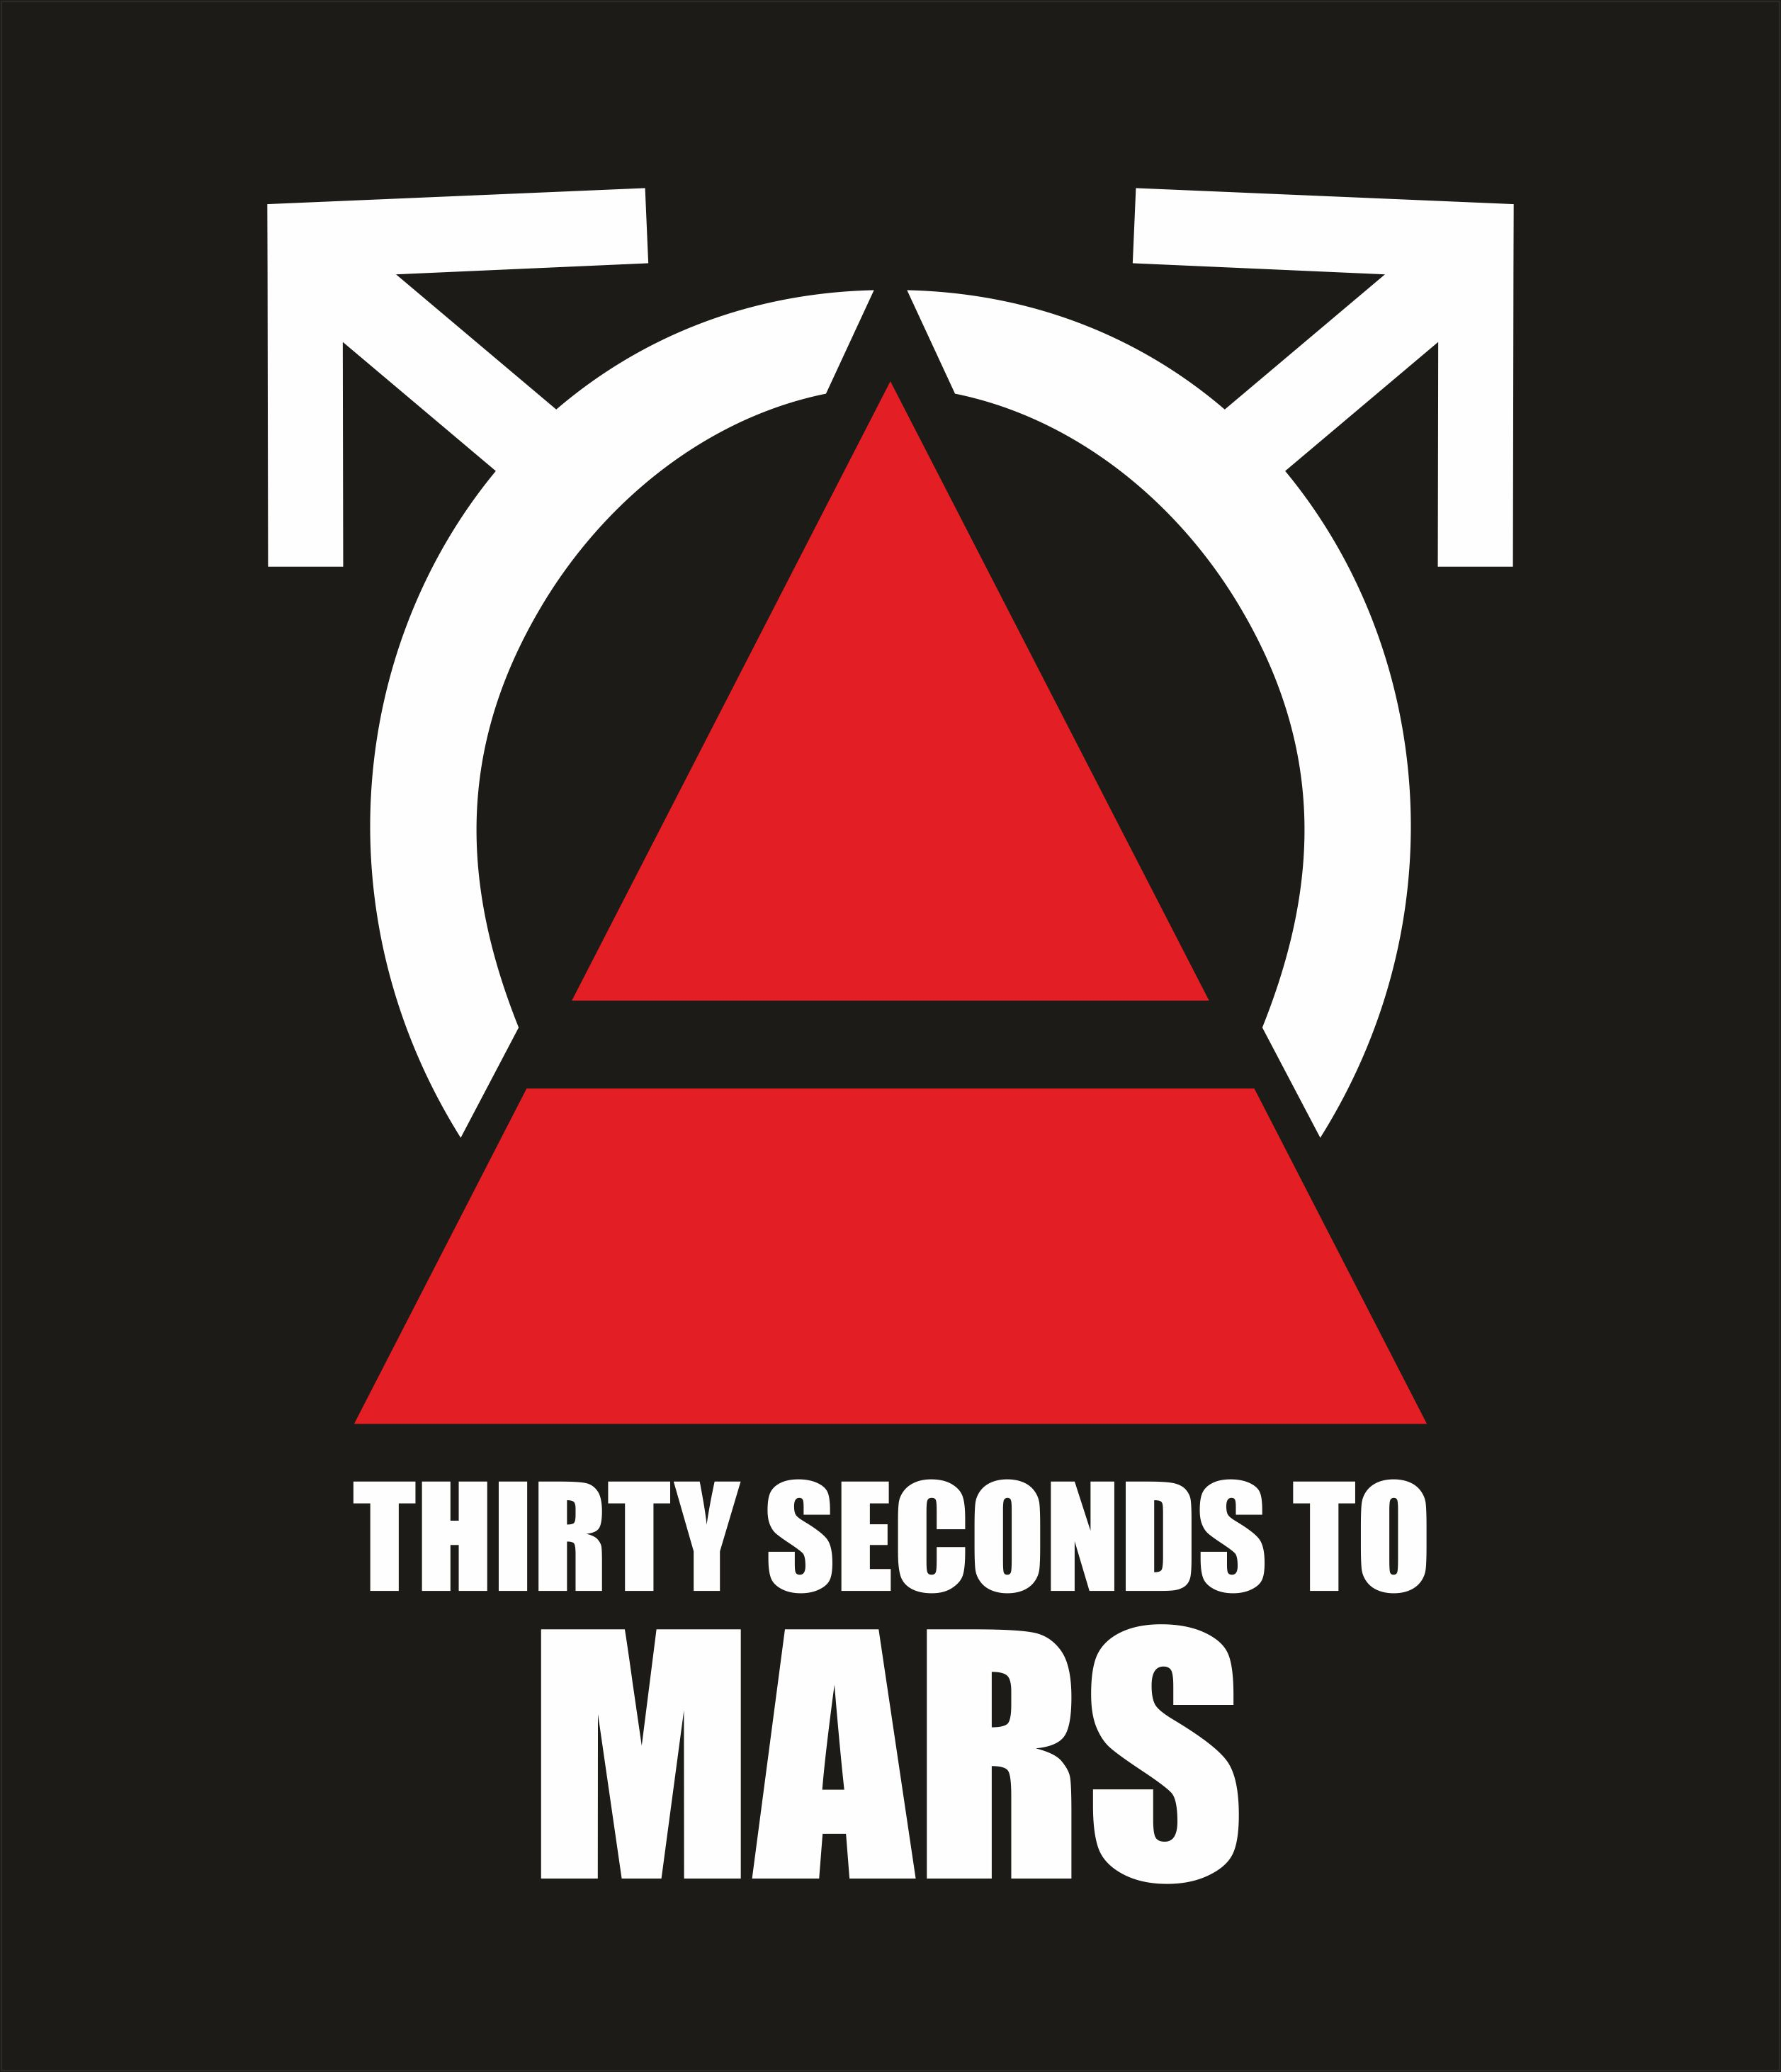 30 seconds to MARS vector image in Corel Draw